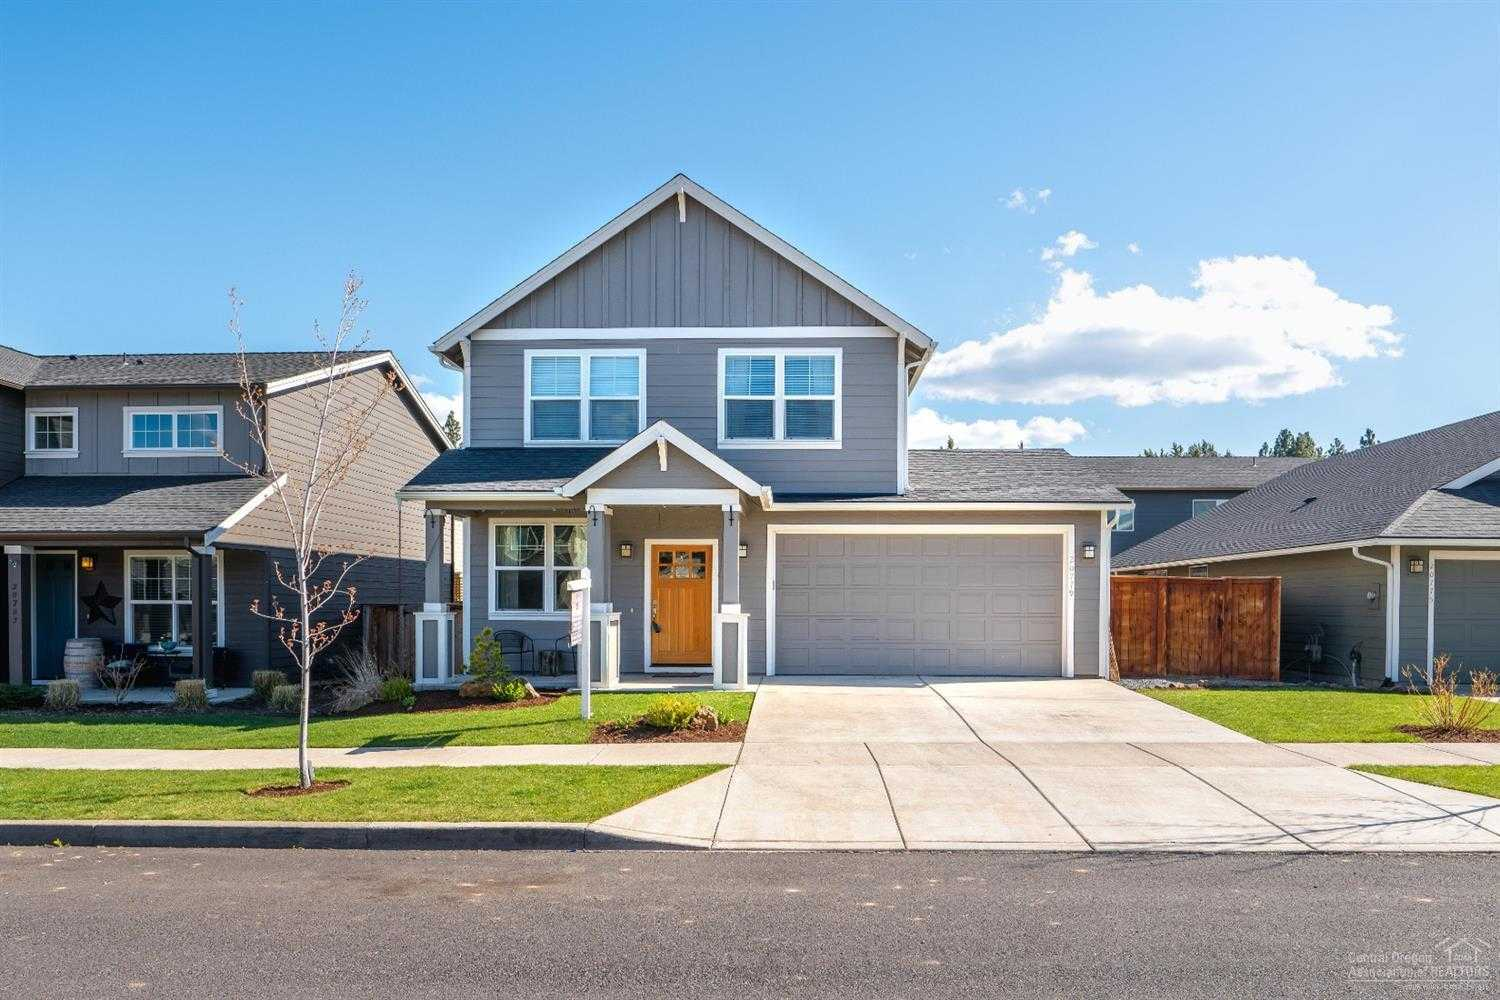 $395,000 - 3Br/3Ba -  for Sale in Bend